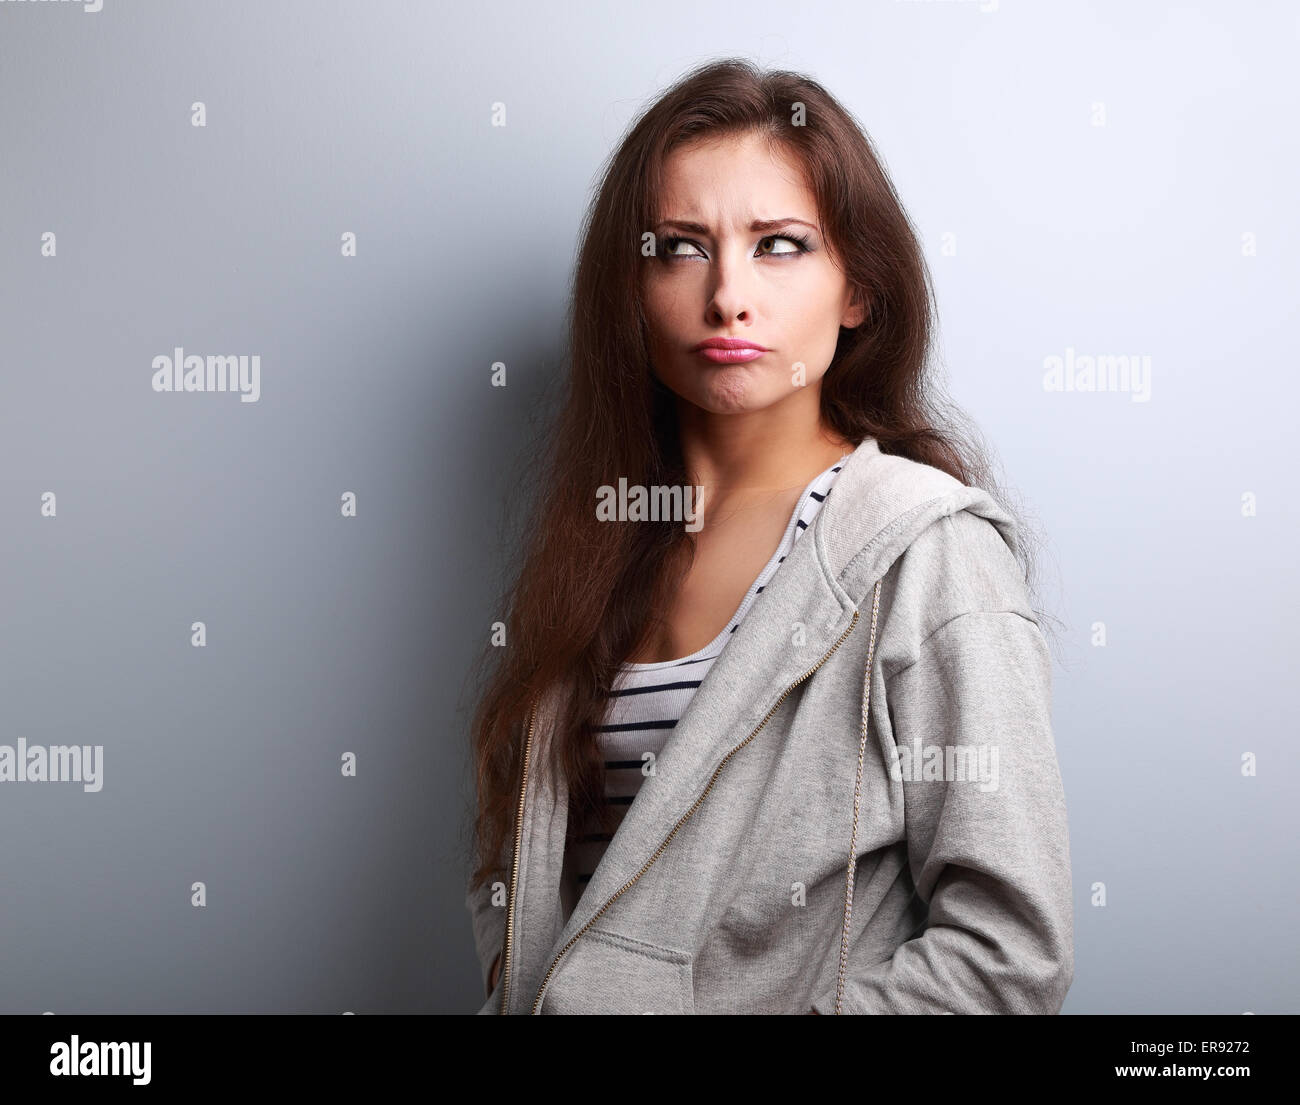 Grimacing fun young woman thinking and looking fun on blue background - Stock Image